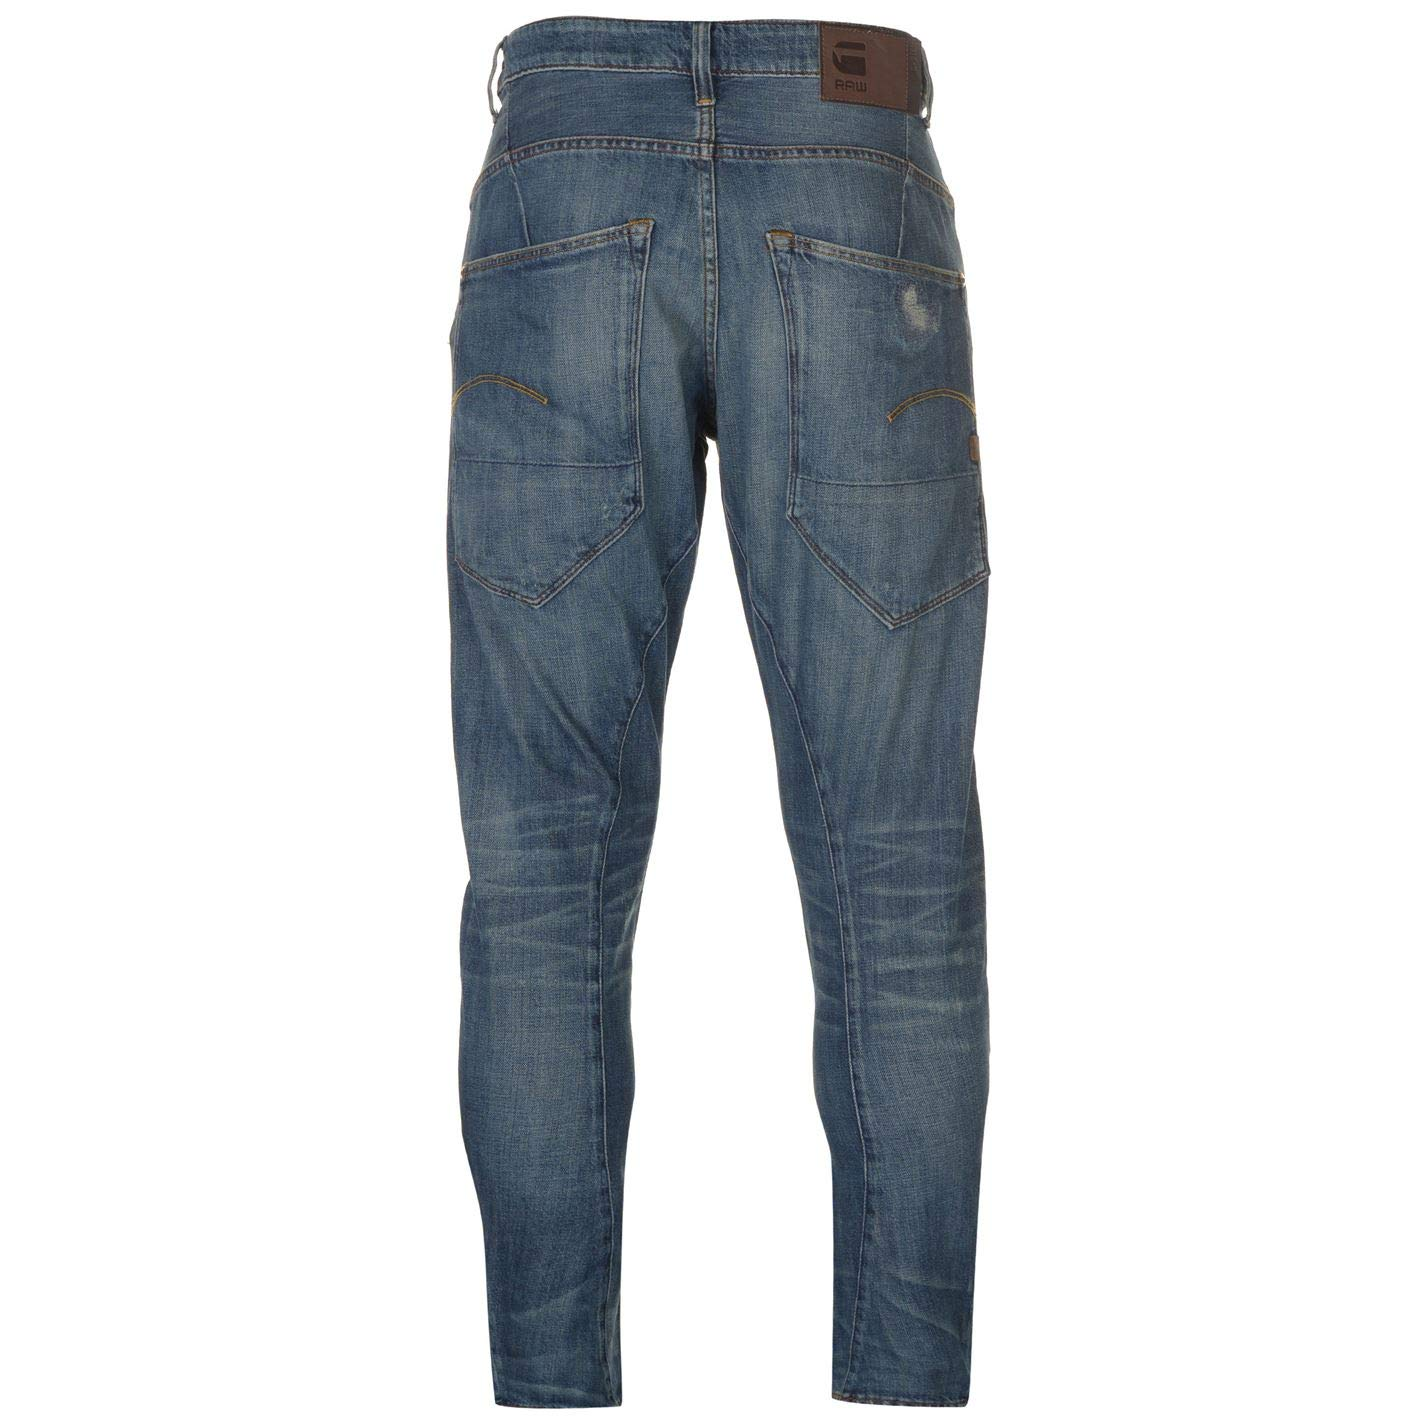 G-STAR RAW Men's Type C 3D Tapered Fit Jean, Medium Aged Restored, 34x32:  Amazon.co.uk: Clothing